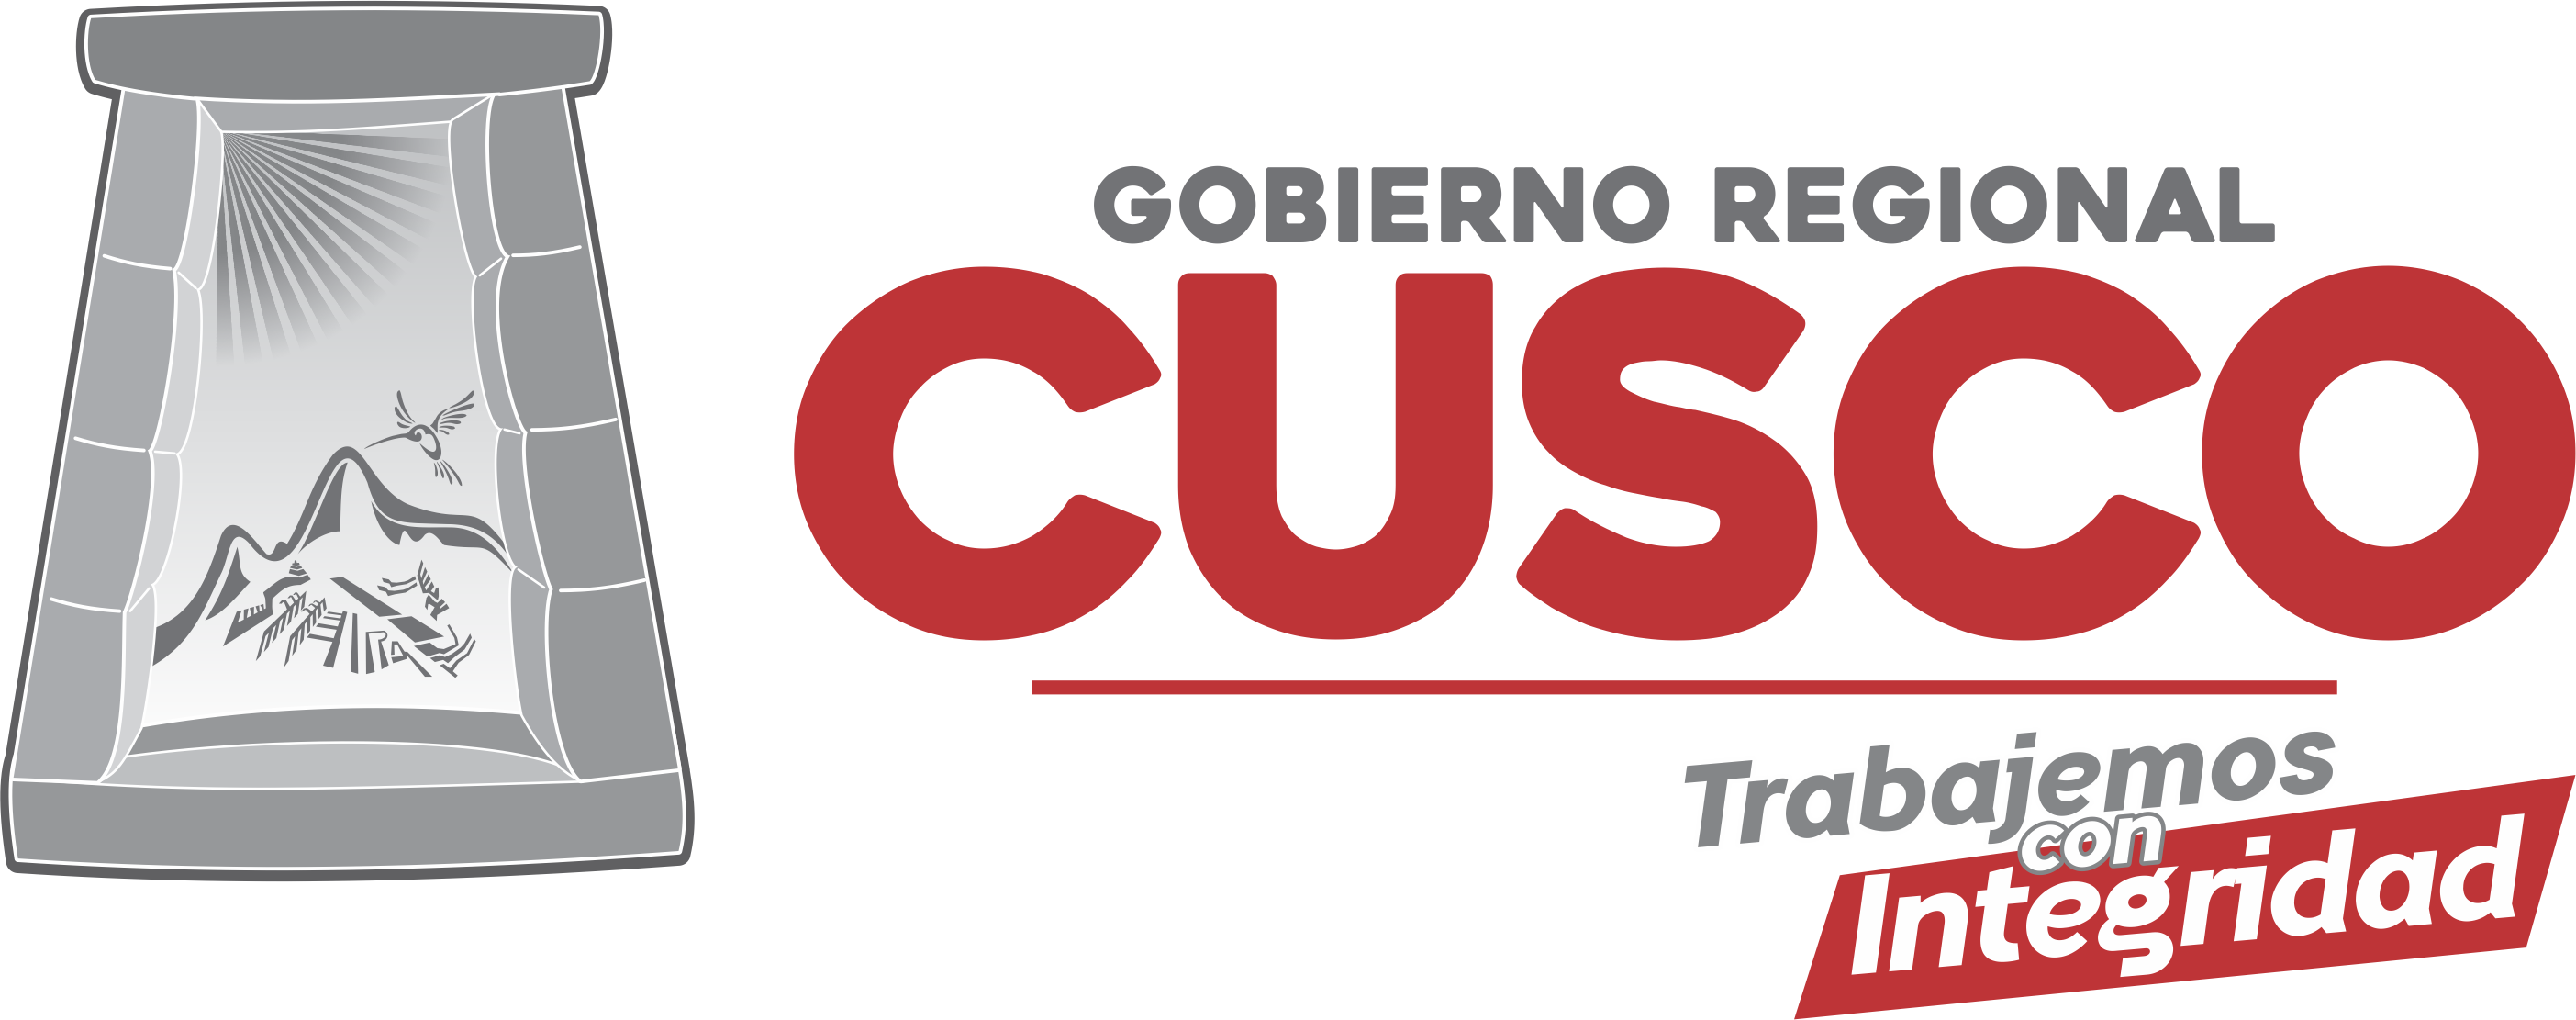 logo region cusco